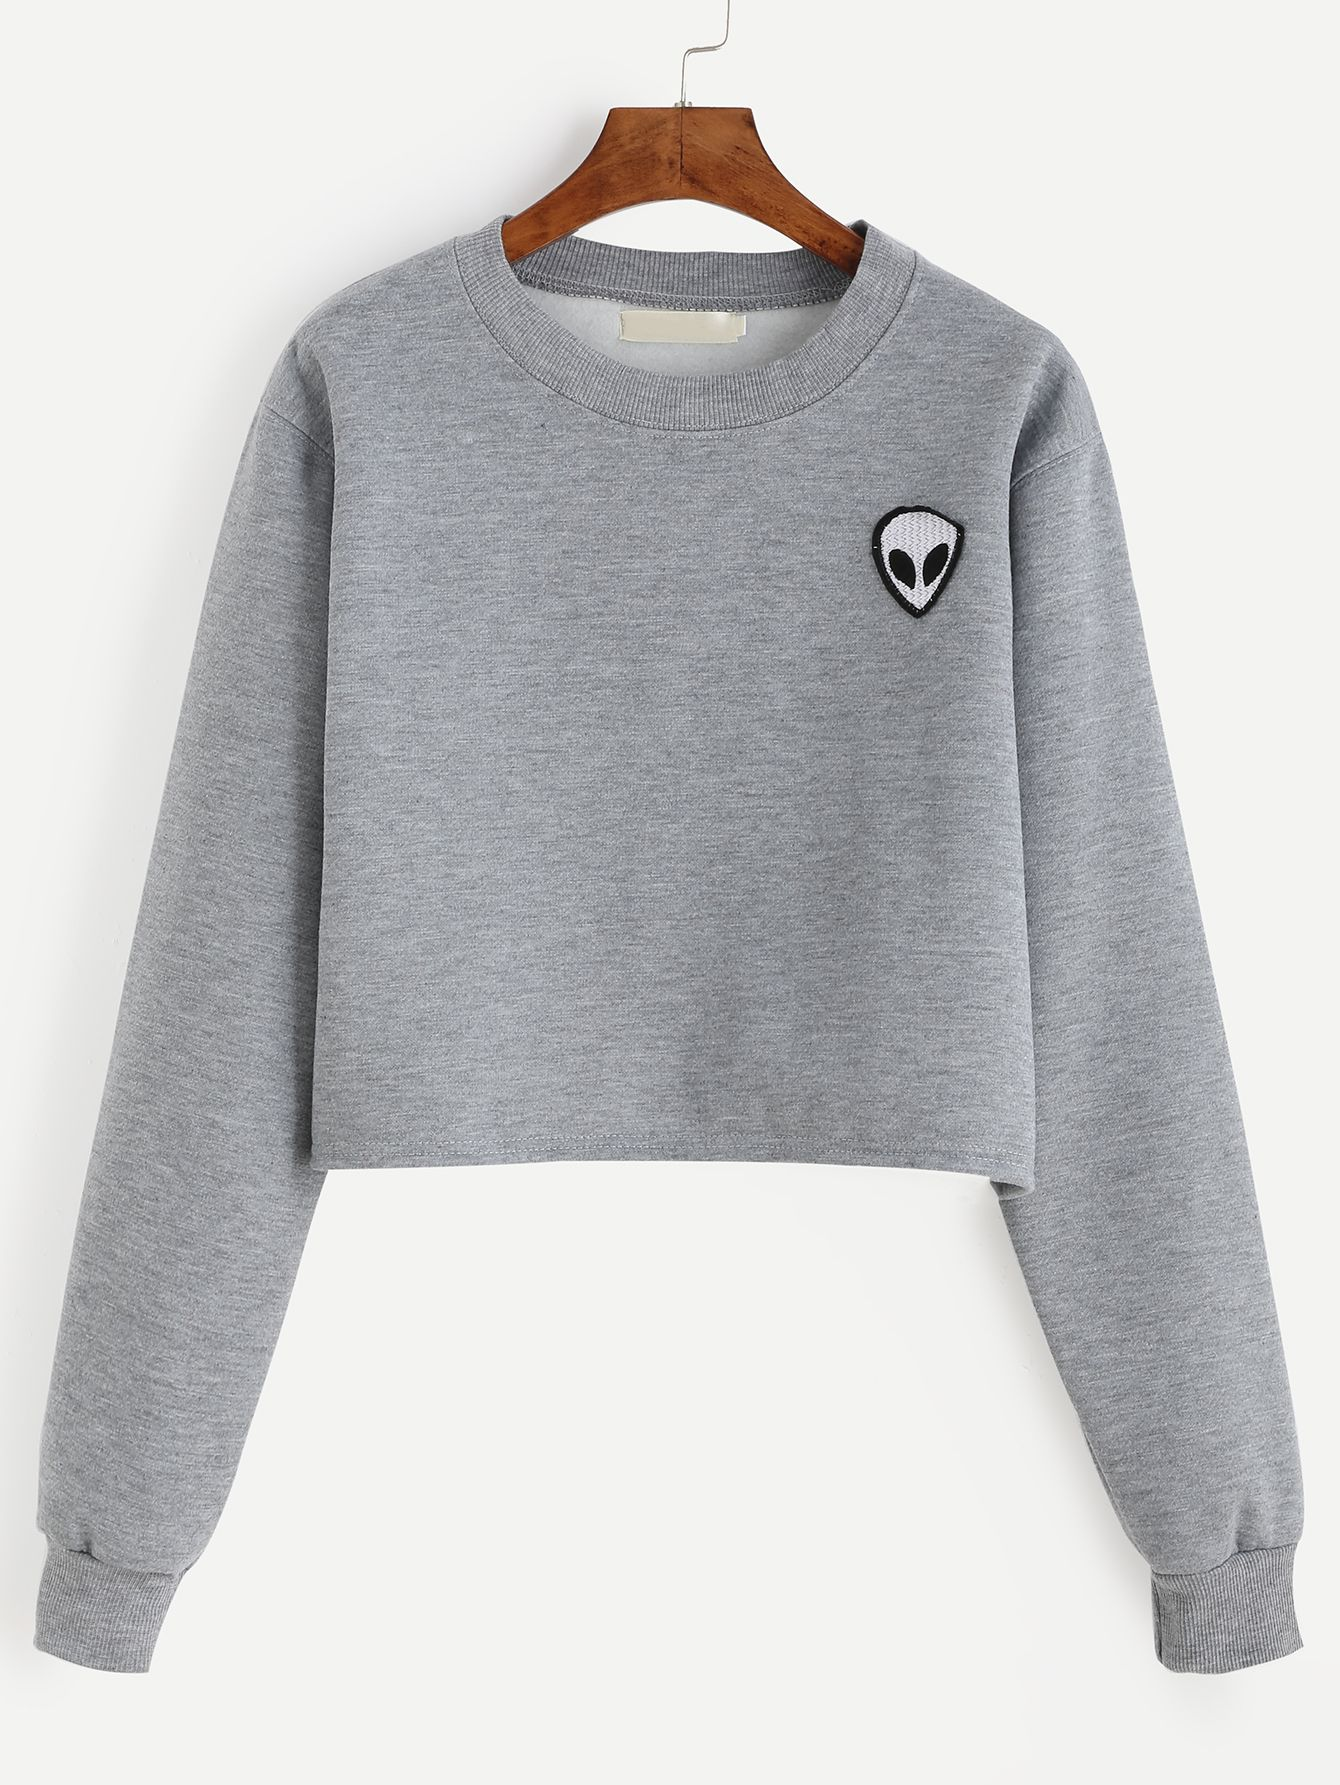 Alien Patch Crop Sweatshirt | Grey alien, Sweatshirts online and ...